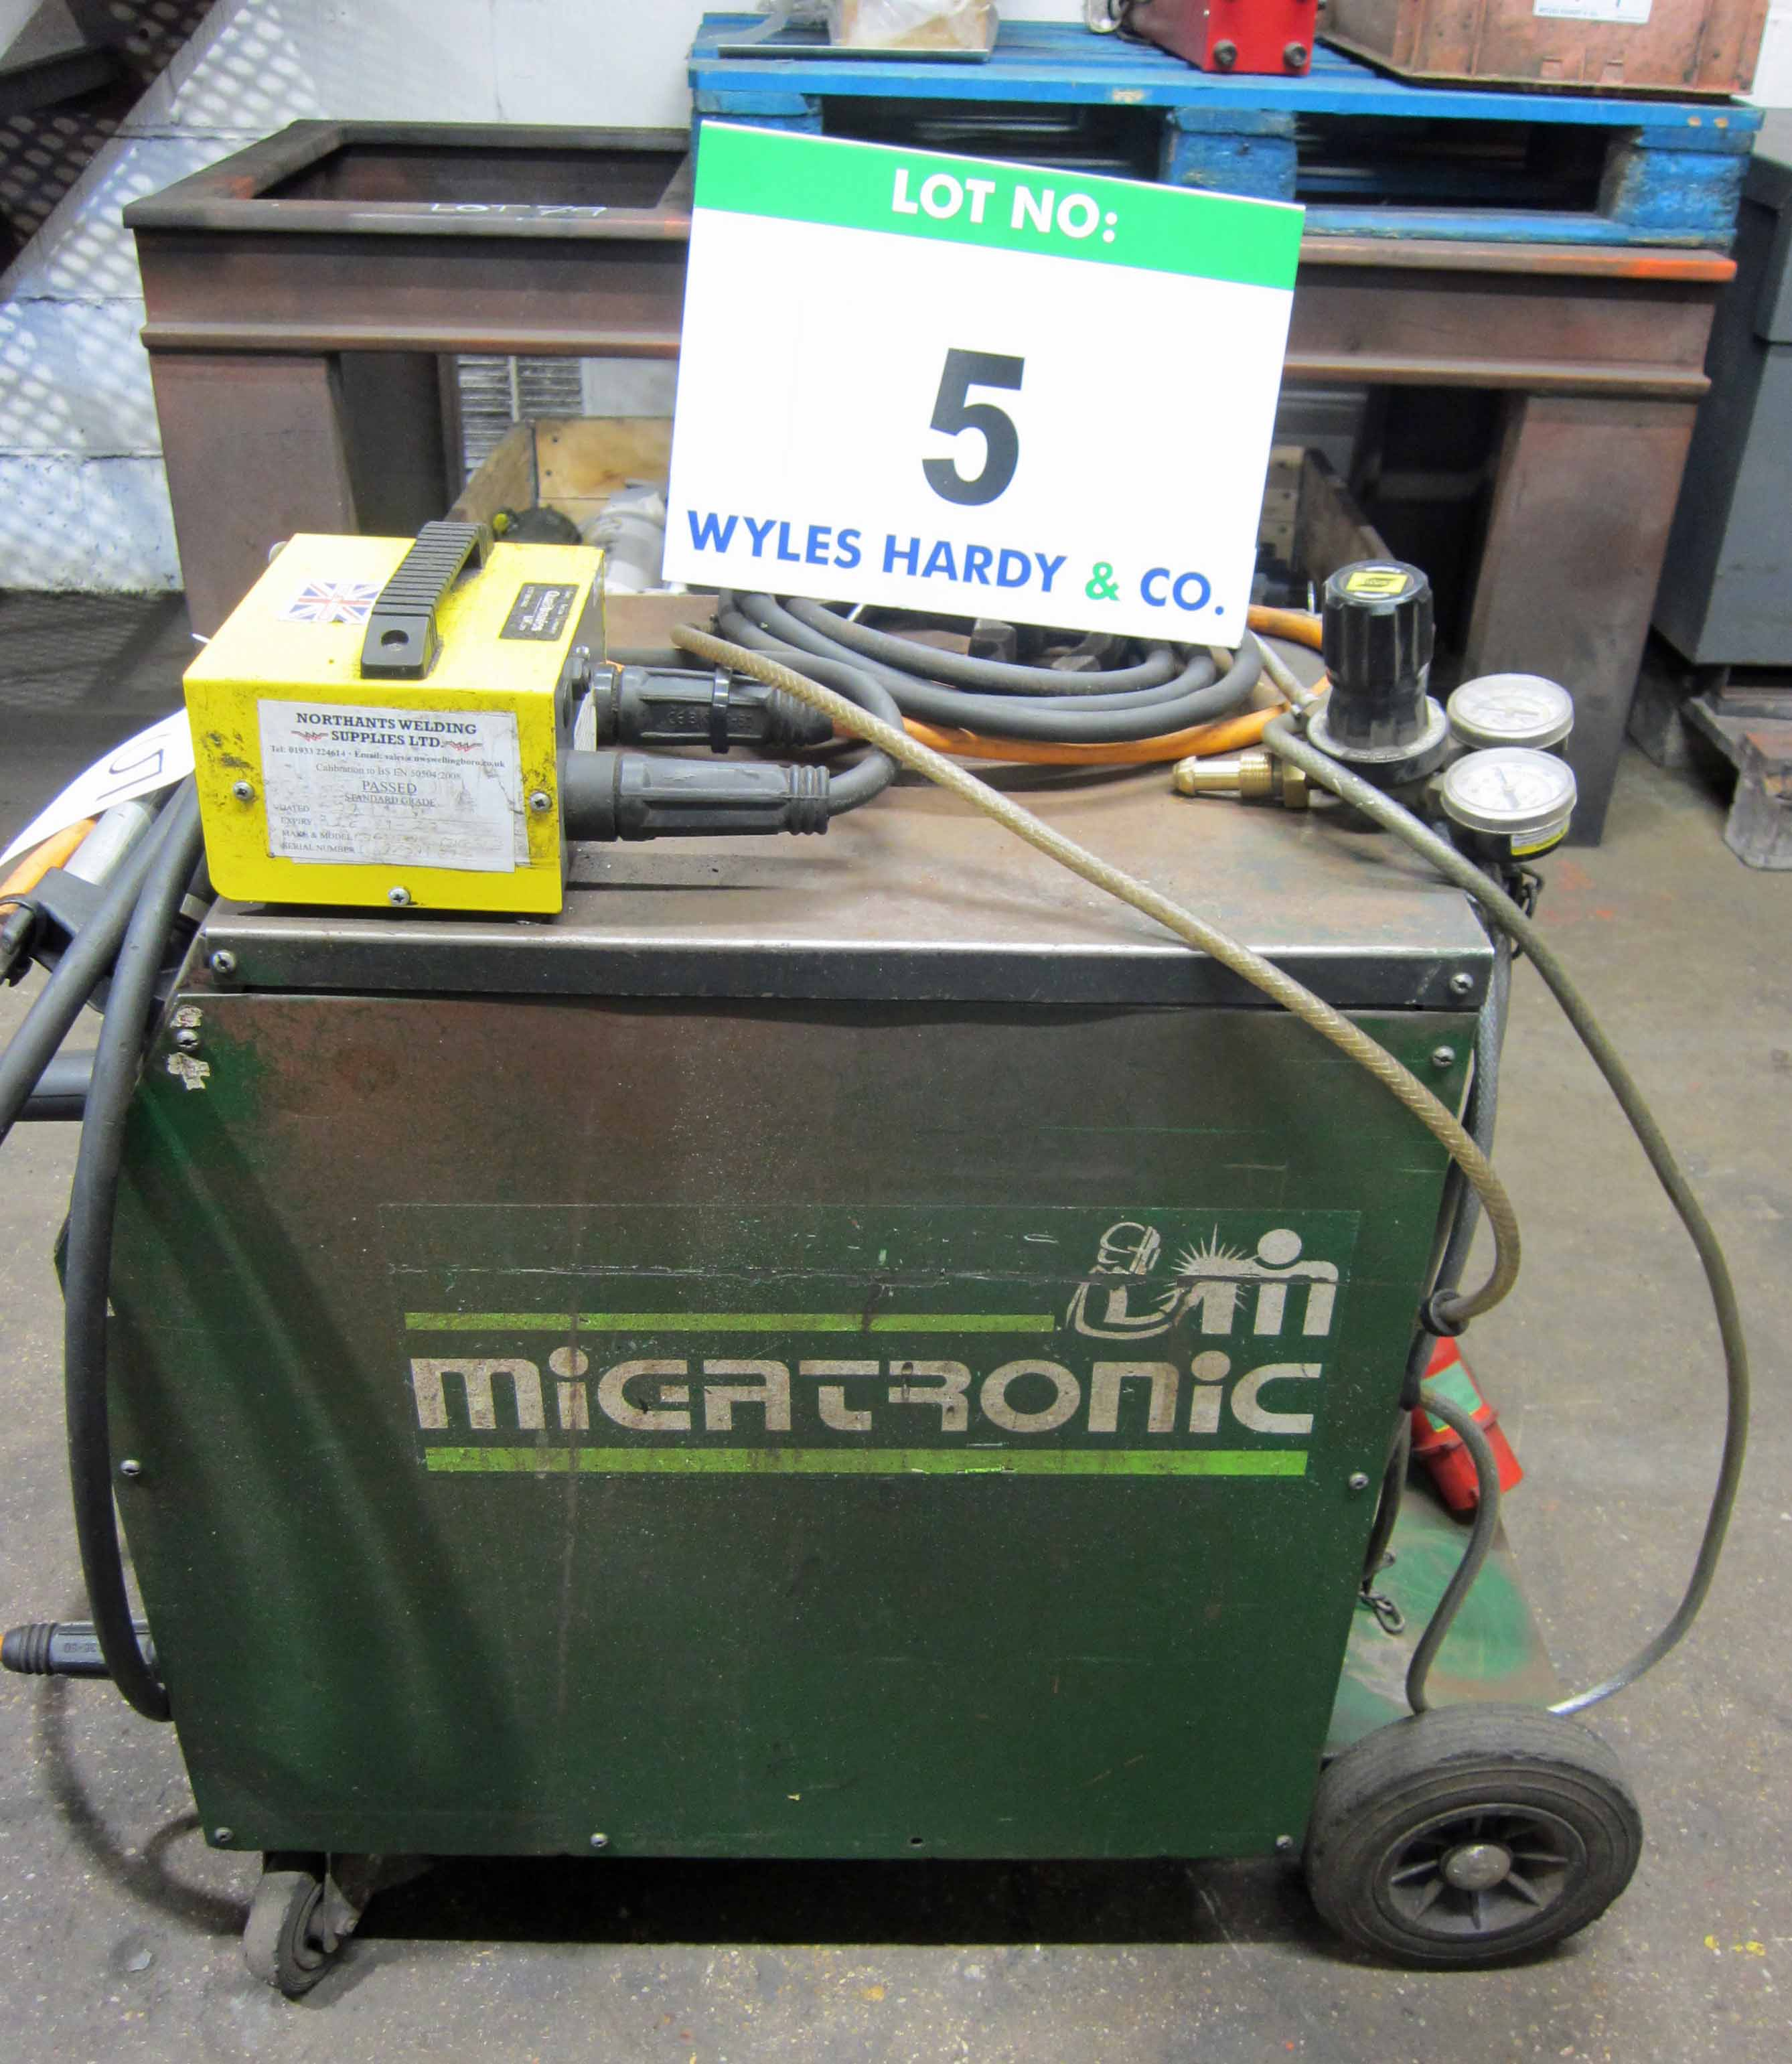 A MIGTRONIC Model Mig 300 Mig Welder complete with QUALITRONICS Voltage and Amp Meters and Gun, - Image 5 of 6